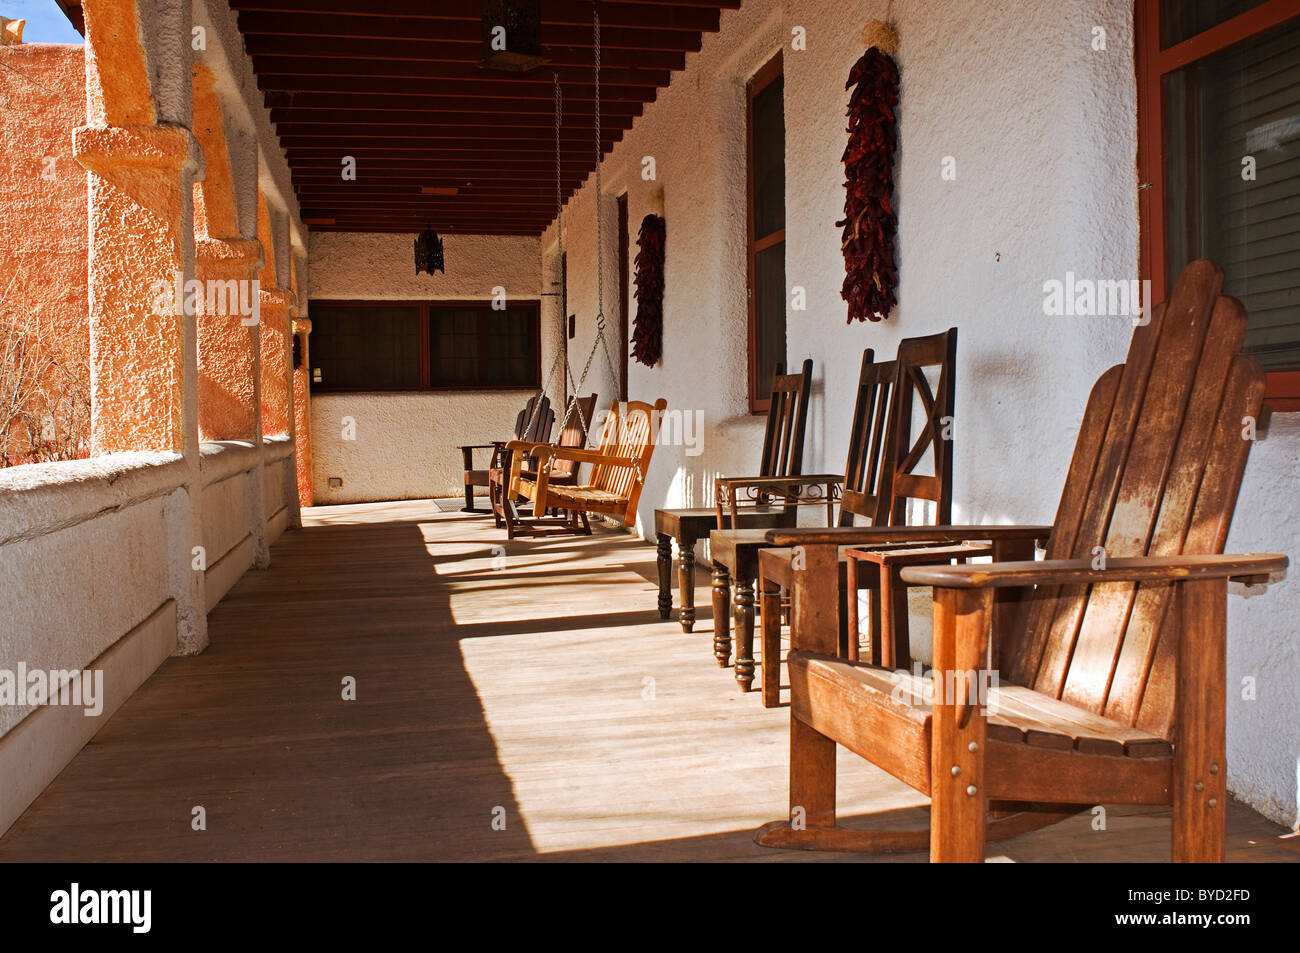 Old Fashioned Wooden Chairs On Front Porch Of Hotel Stock Photo